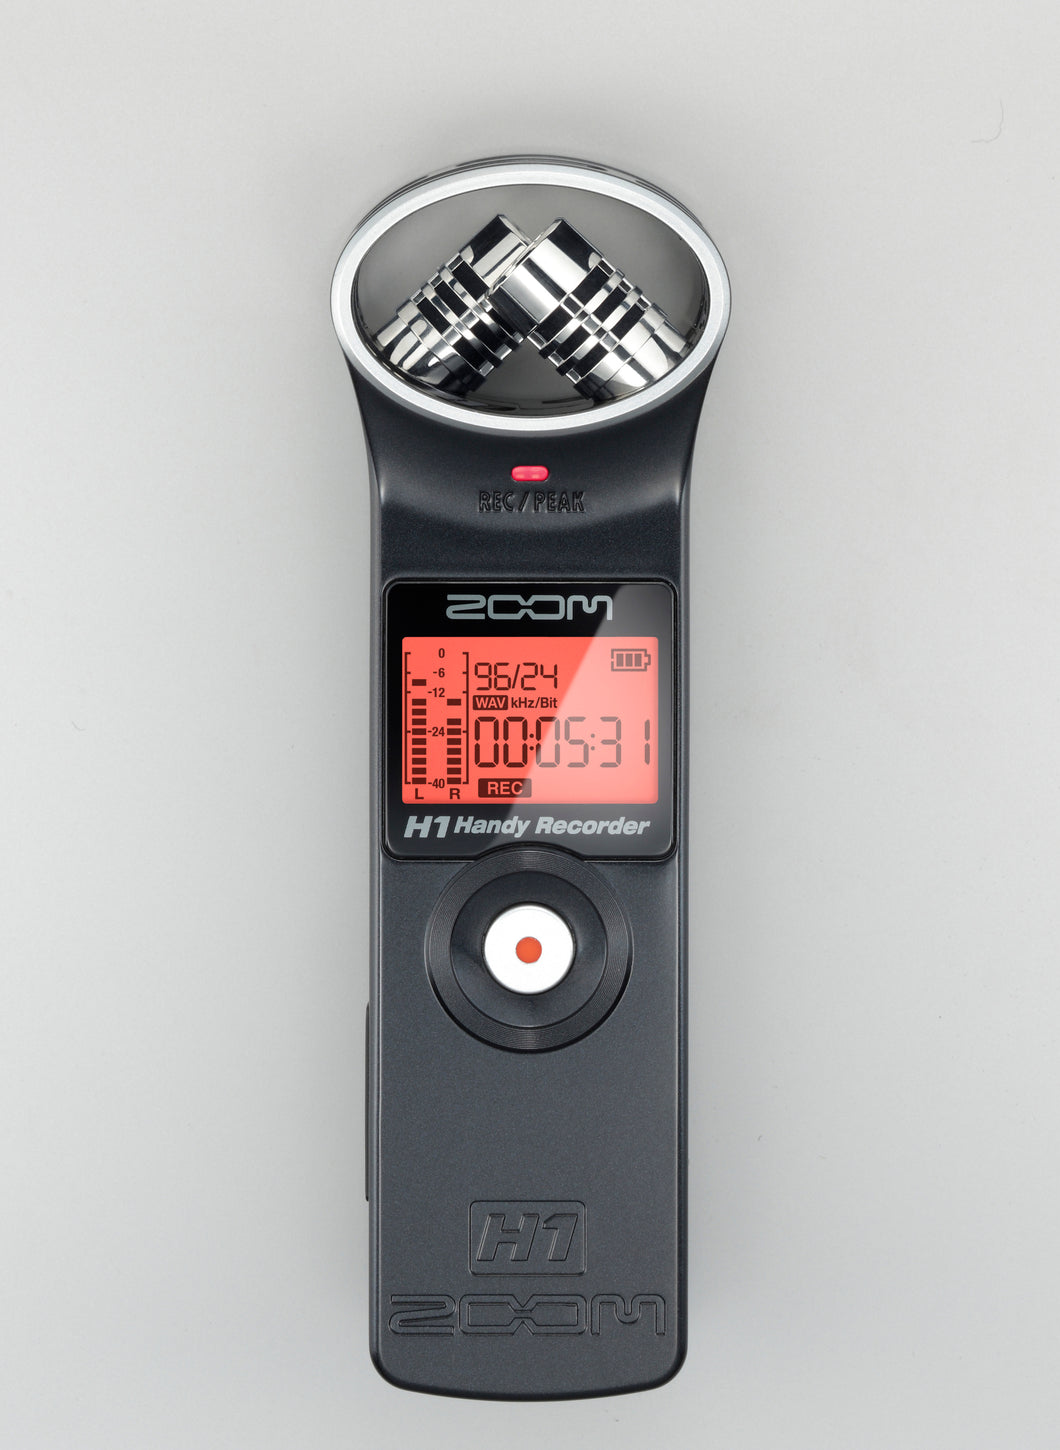 ZOOM - H1 Handy Recorder